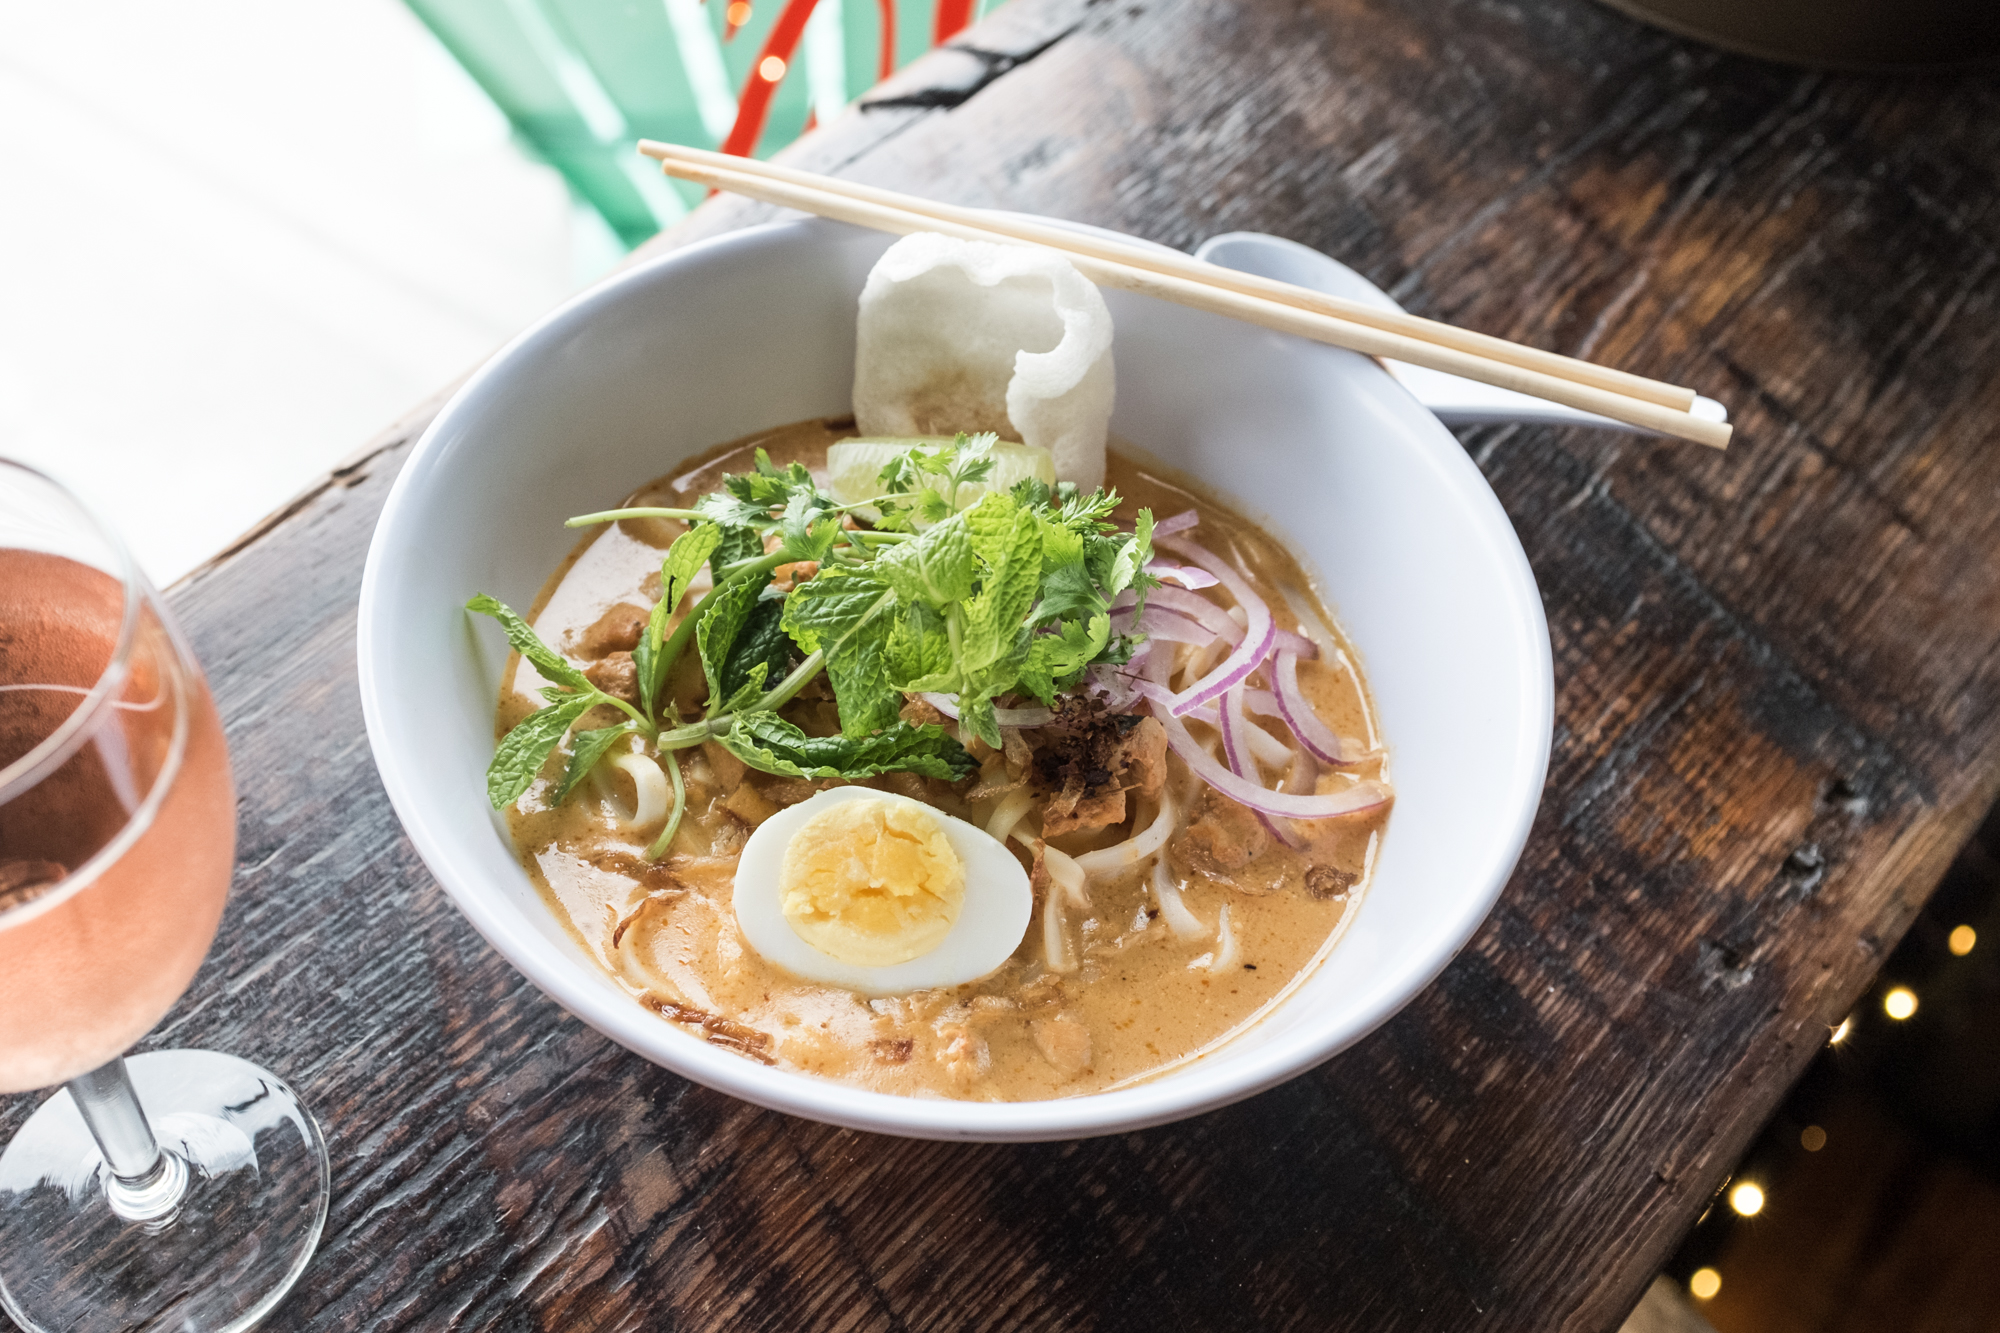 Chicken coconut noodles from Rangoon NoodleLab, an orange broth in a white bowl